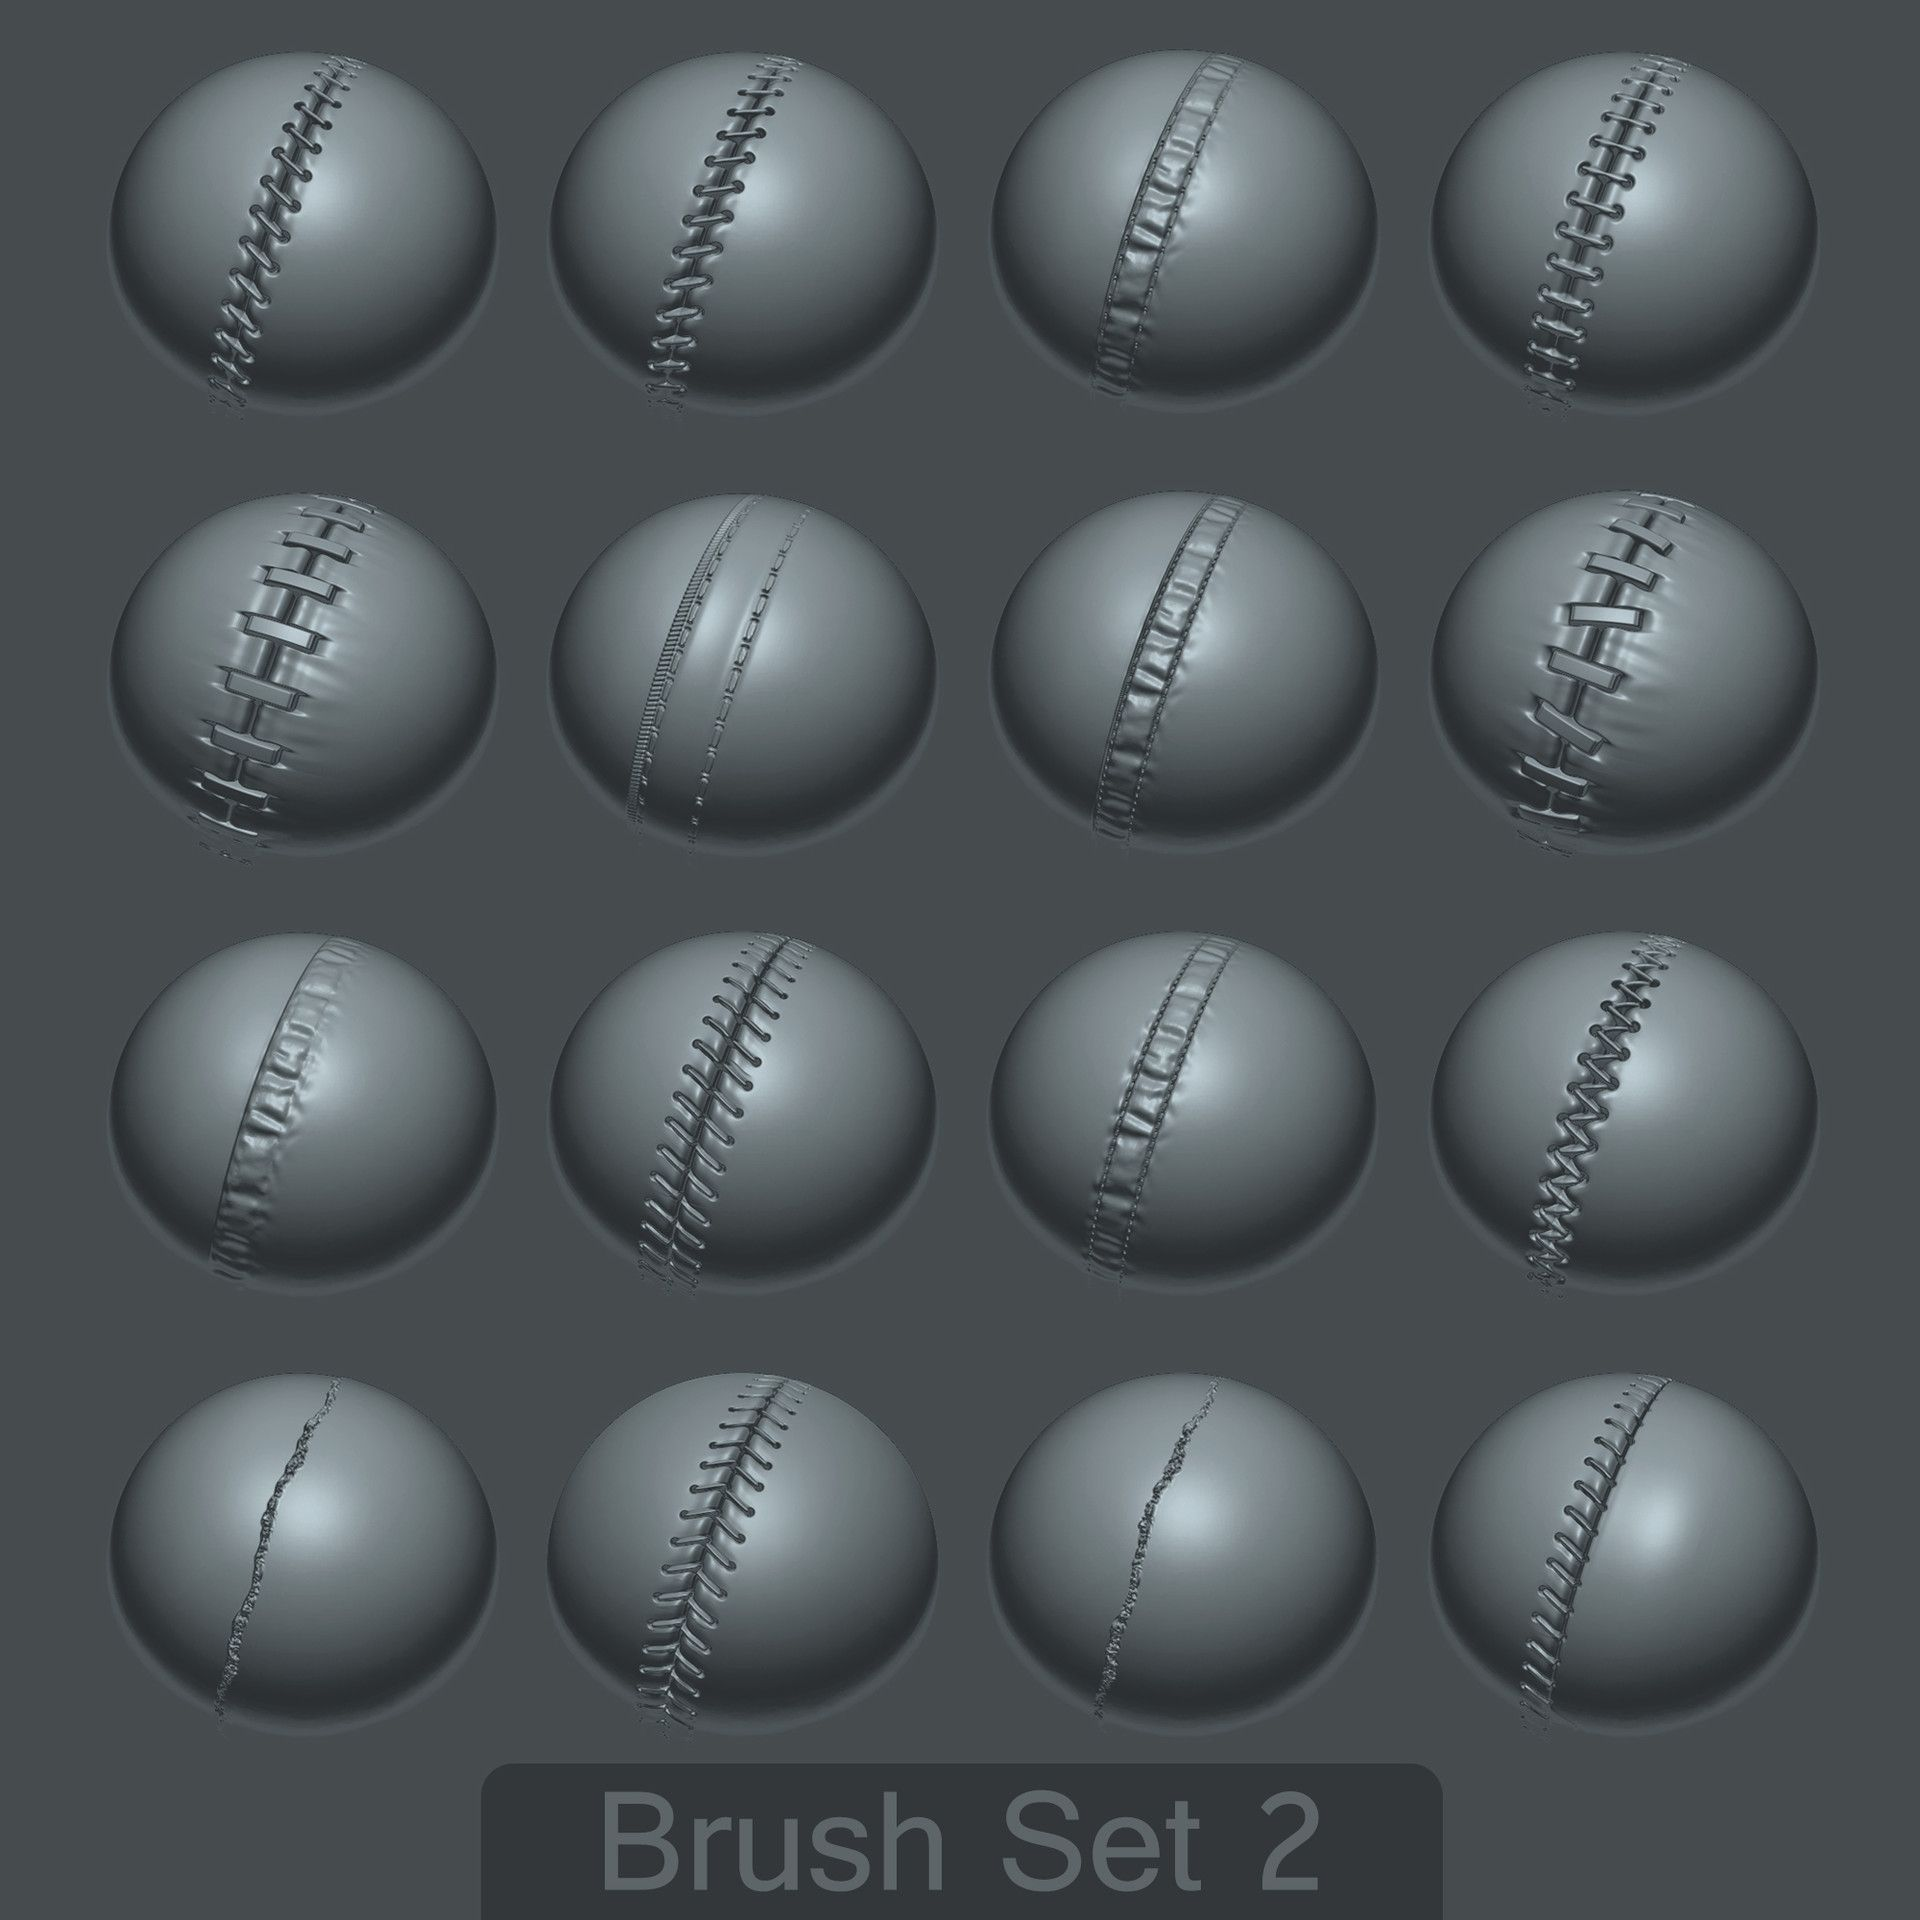 ArtStation - 16 Custom Seam/Stitch brushes for zBrush SET #2